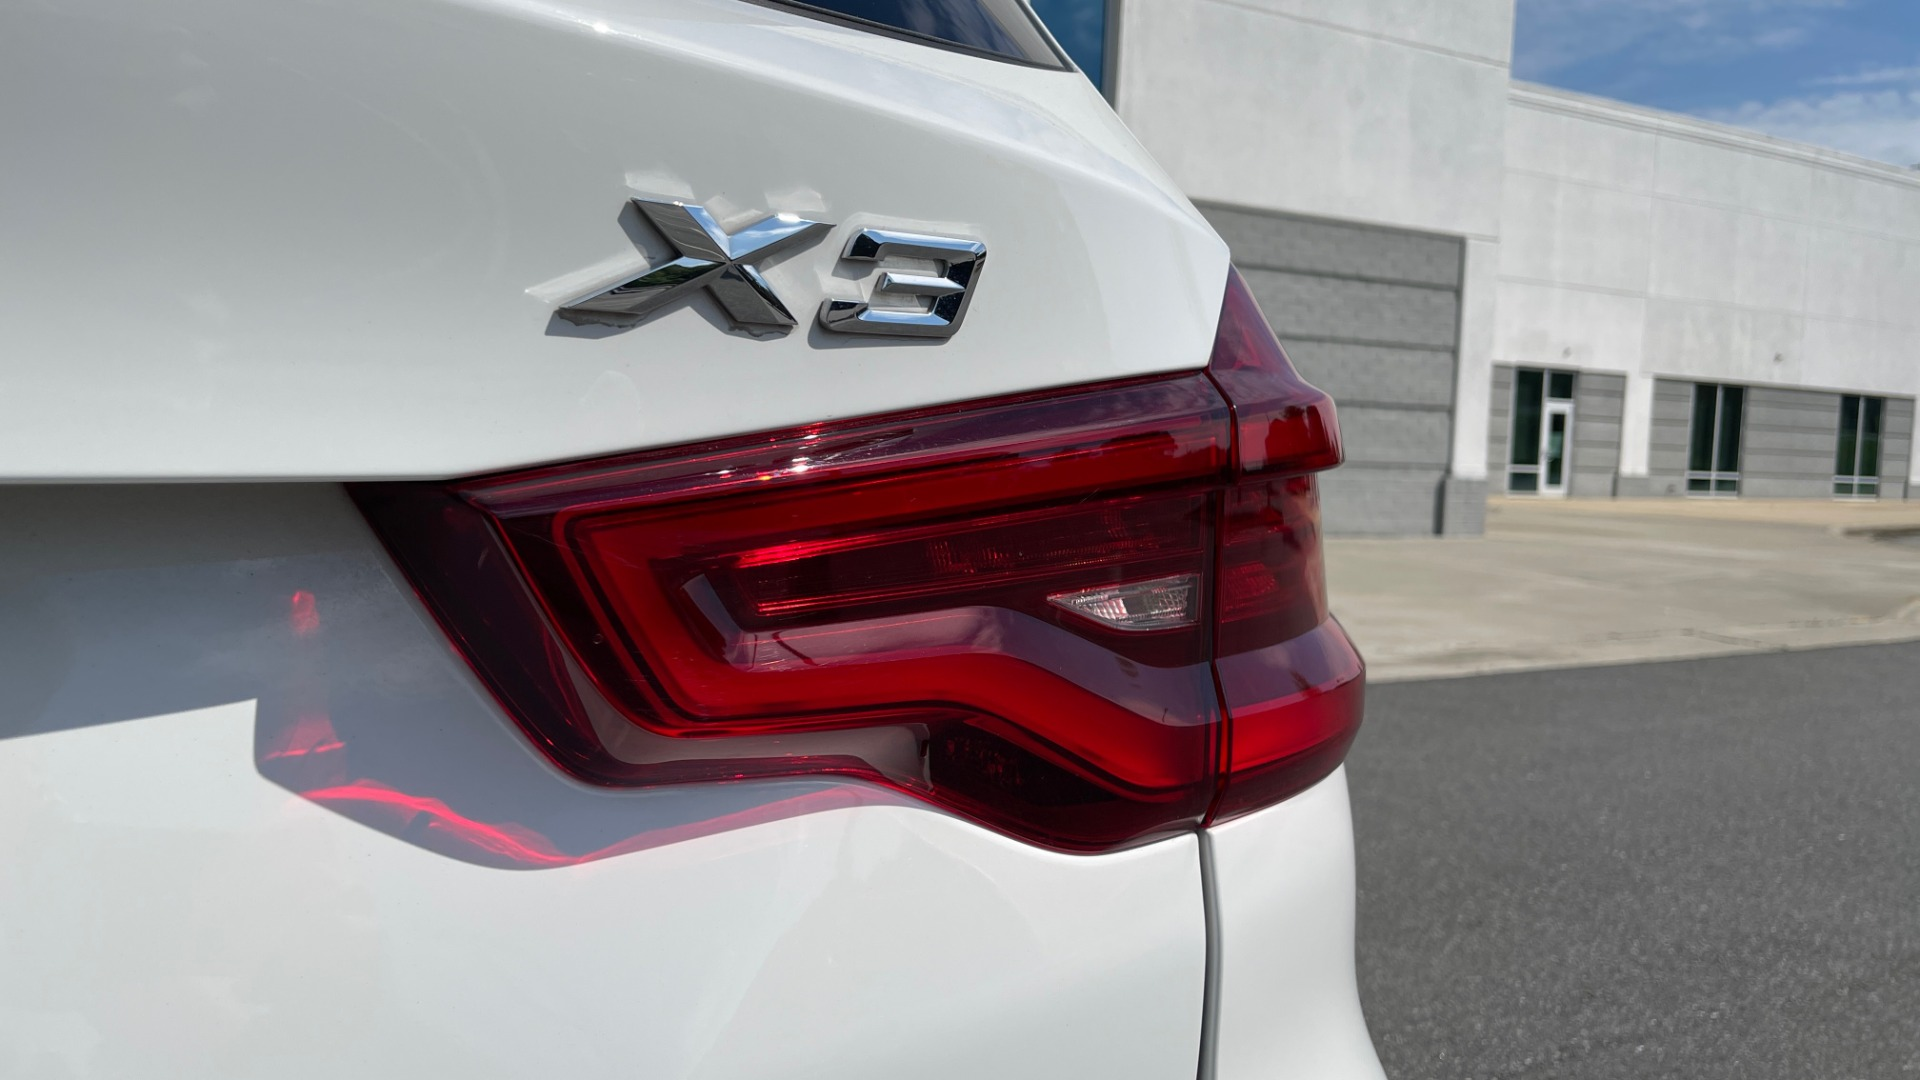 Used 2018 BMW X3 XDRIVE30I CONVENIENCE PKG / HEATED FRONT SEATS / REARVIEW for sale $36,595 at Formula Imports in Charlotte NC 28227 23